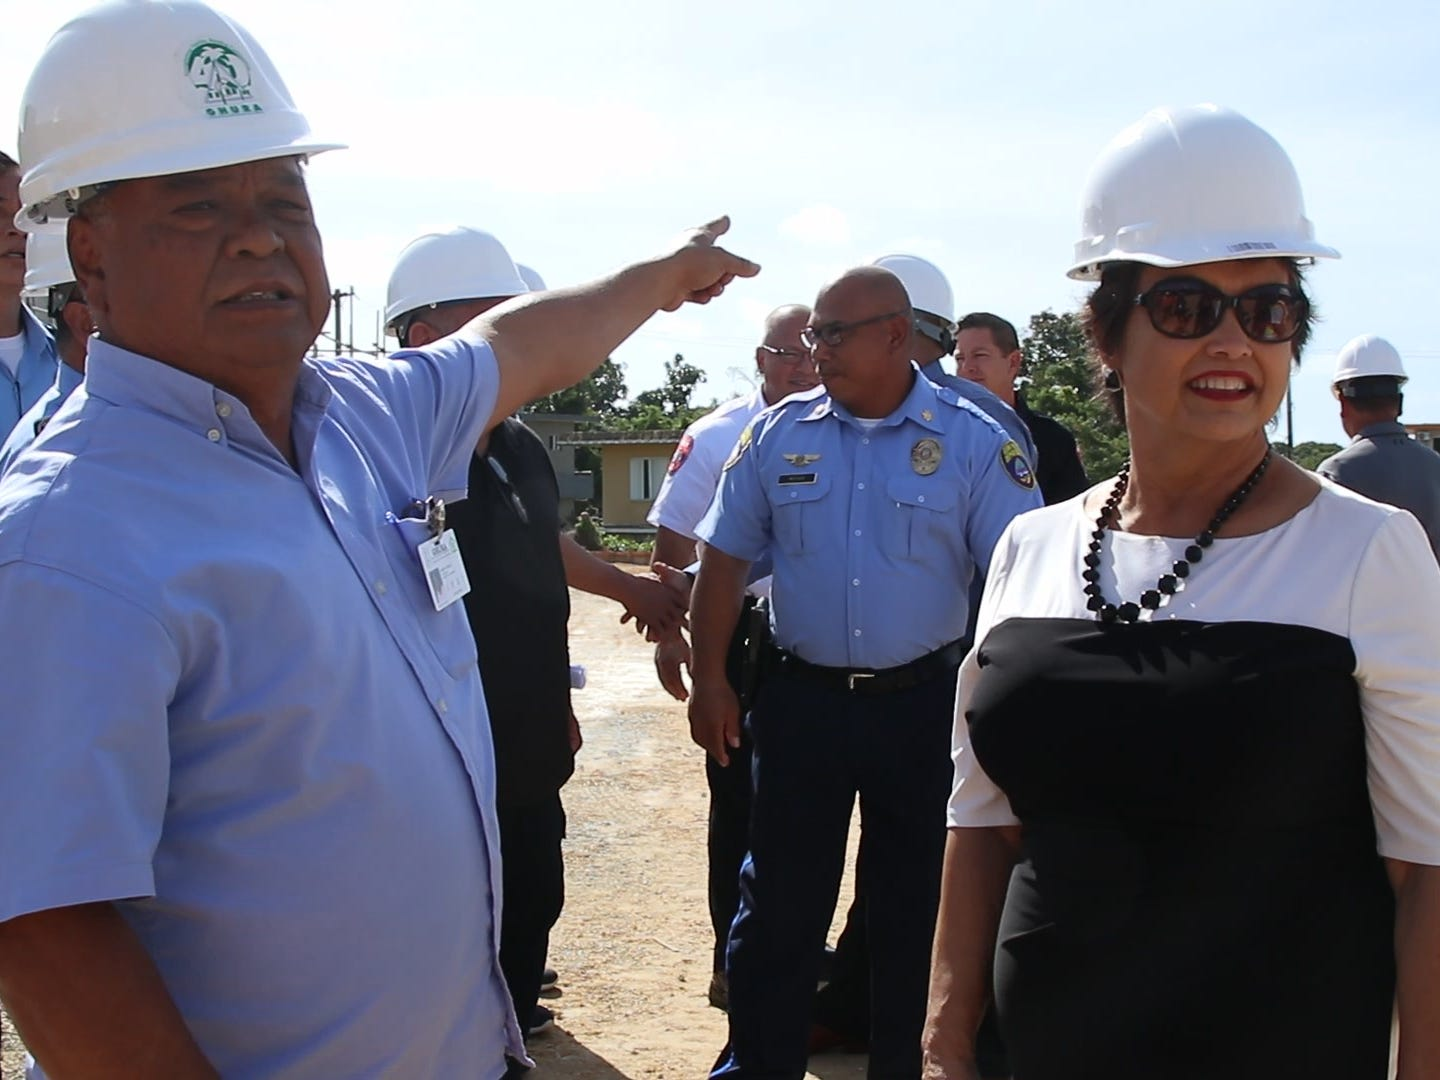 Albert Santos, GHURA architectural and engineering manager, left, guided Gov. Lou Leon Guerrero on a tour of the new central police precinct in Sinajana on Wednesday Feb. 6, 2019.